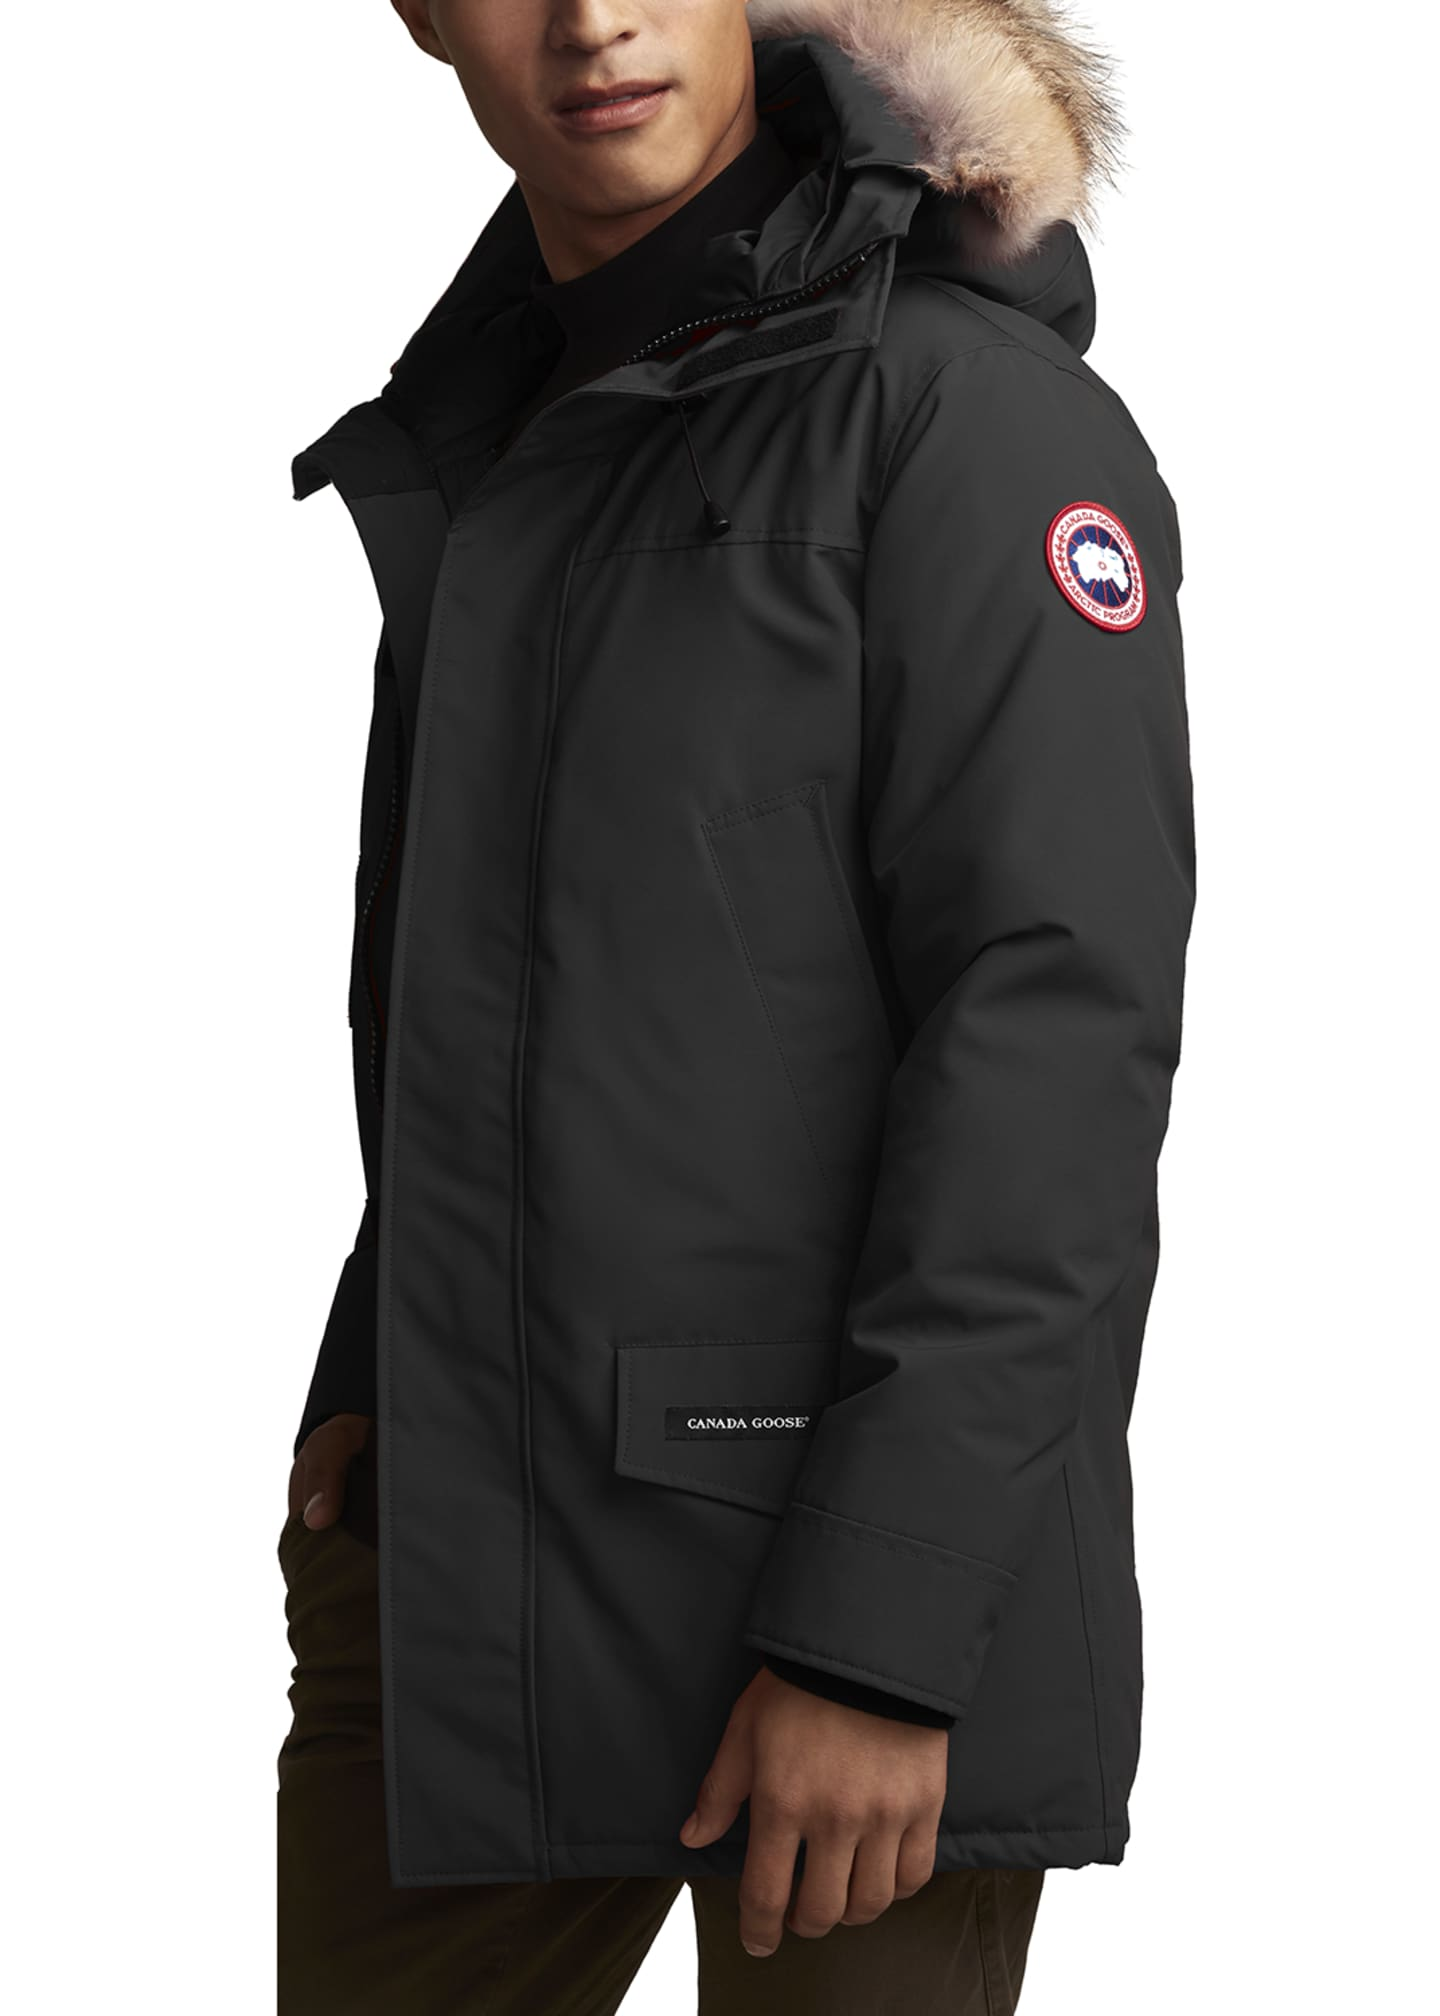 Image 2 of 4: Men's Langford Arctic-Tech Parka Jacket with Fur Hood - Fusion Fit